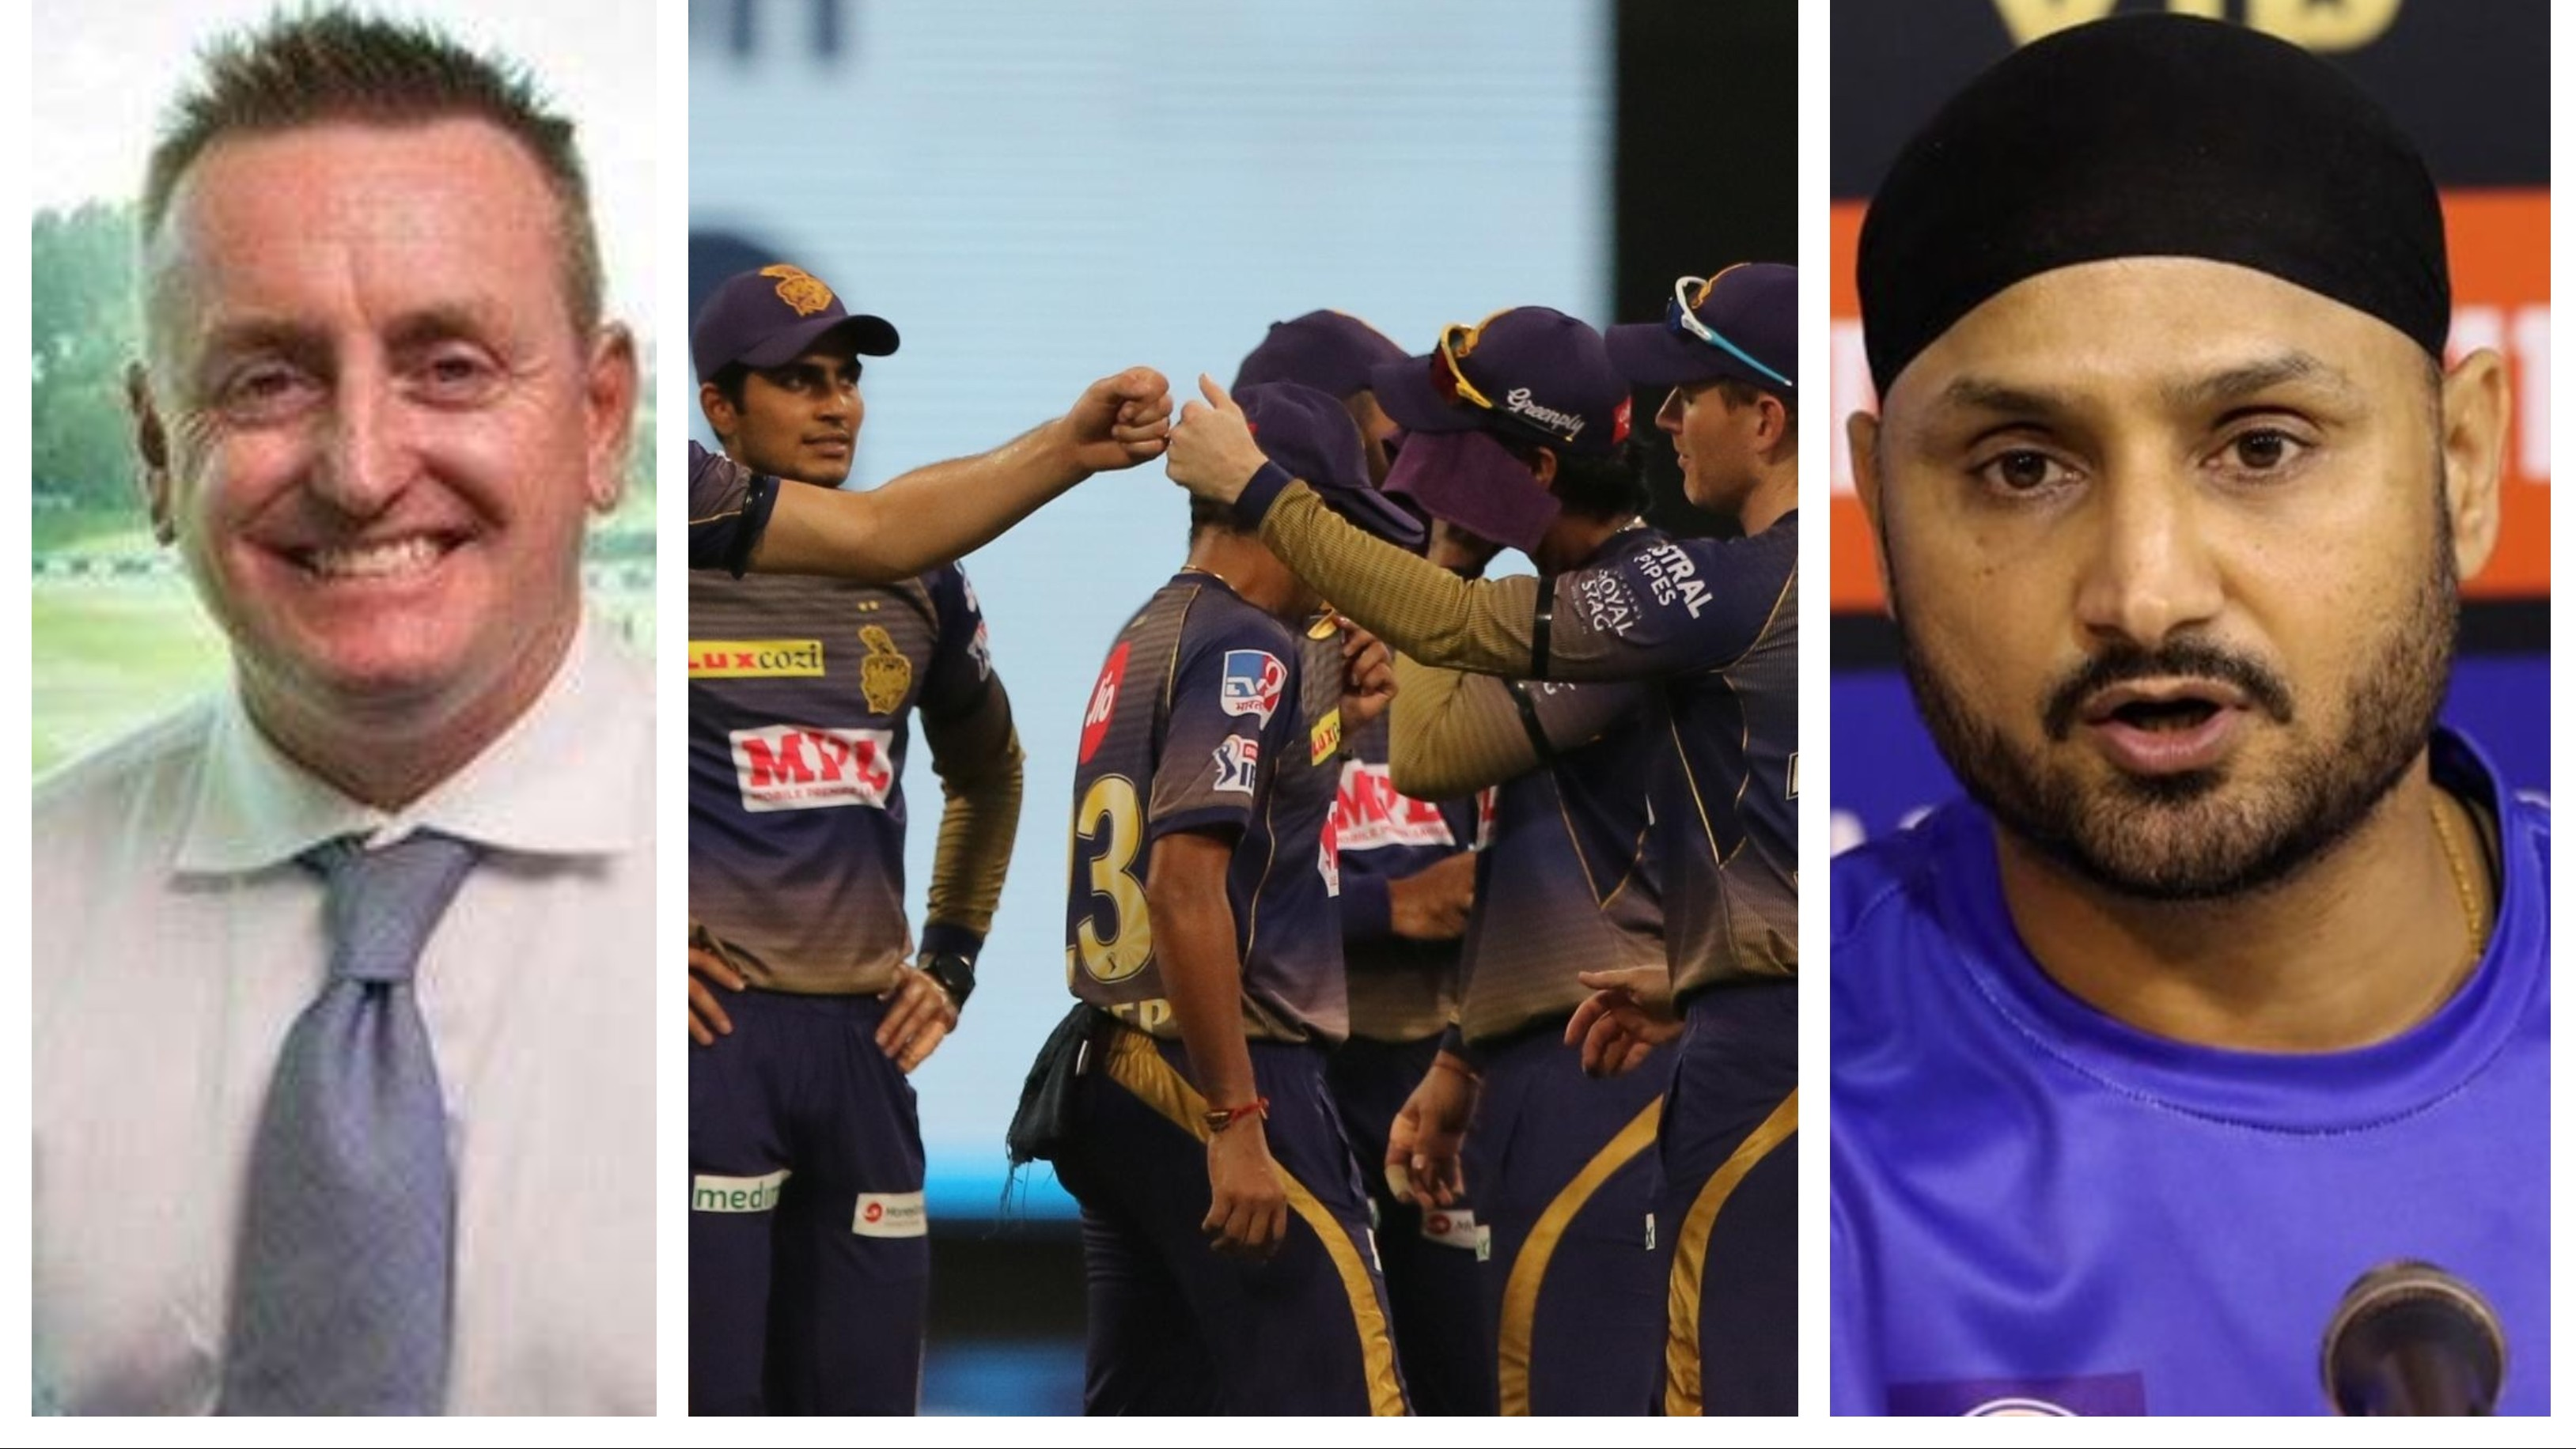 IPL 2020: Cricket fraternity reacts as KKR bowlers restrict CSK to 157/5 while defending 167